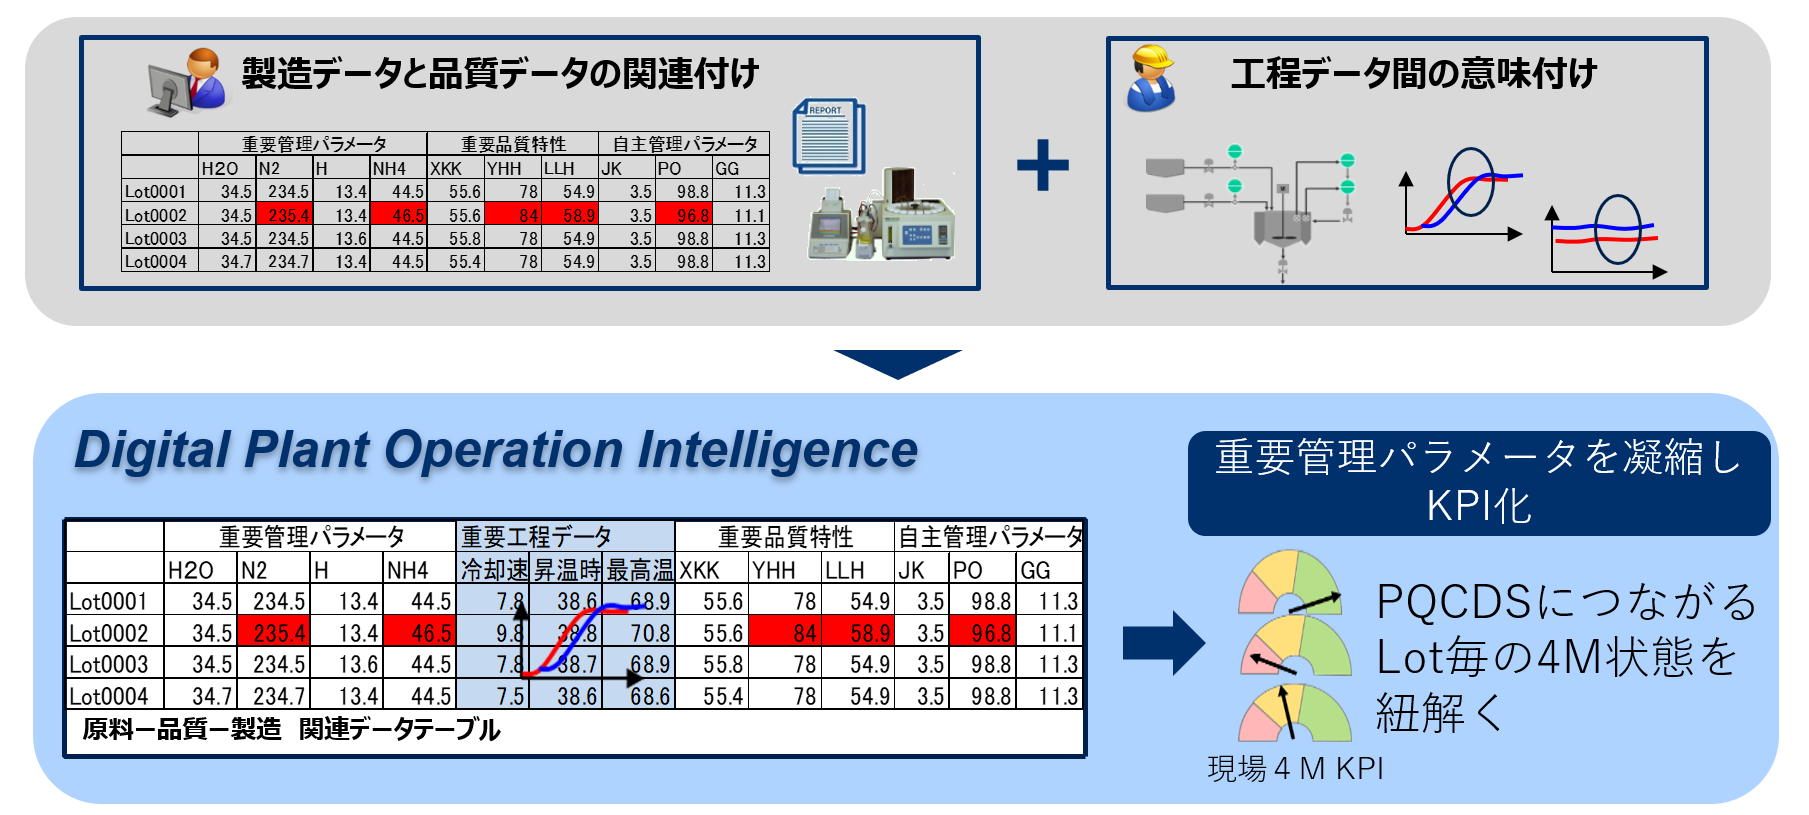 Digital Plant Operation Intelligence(DPI)